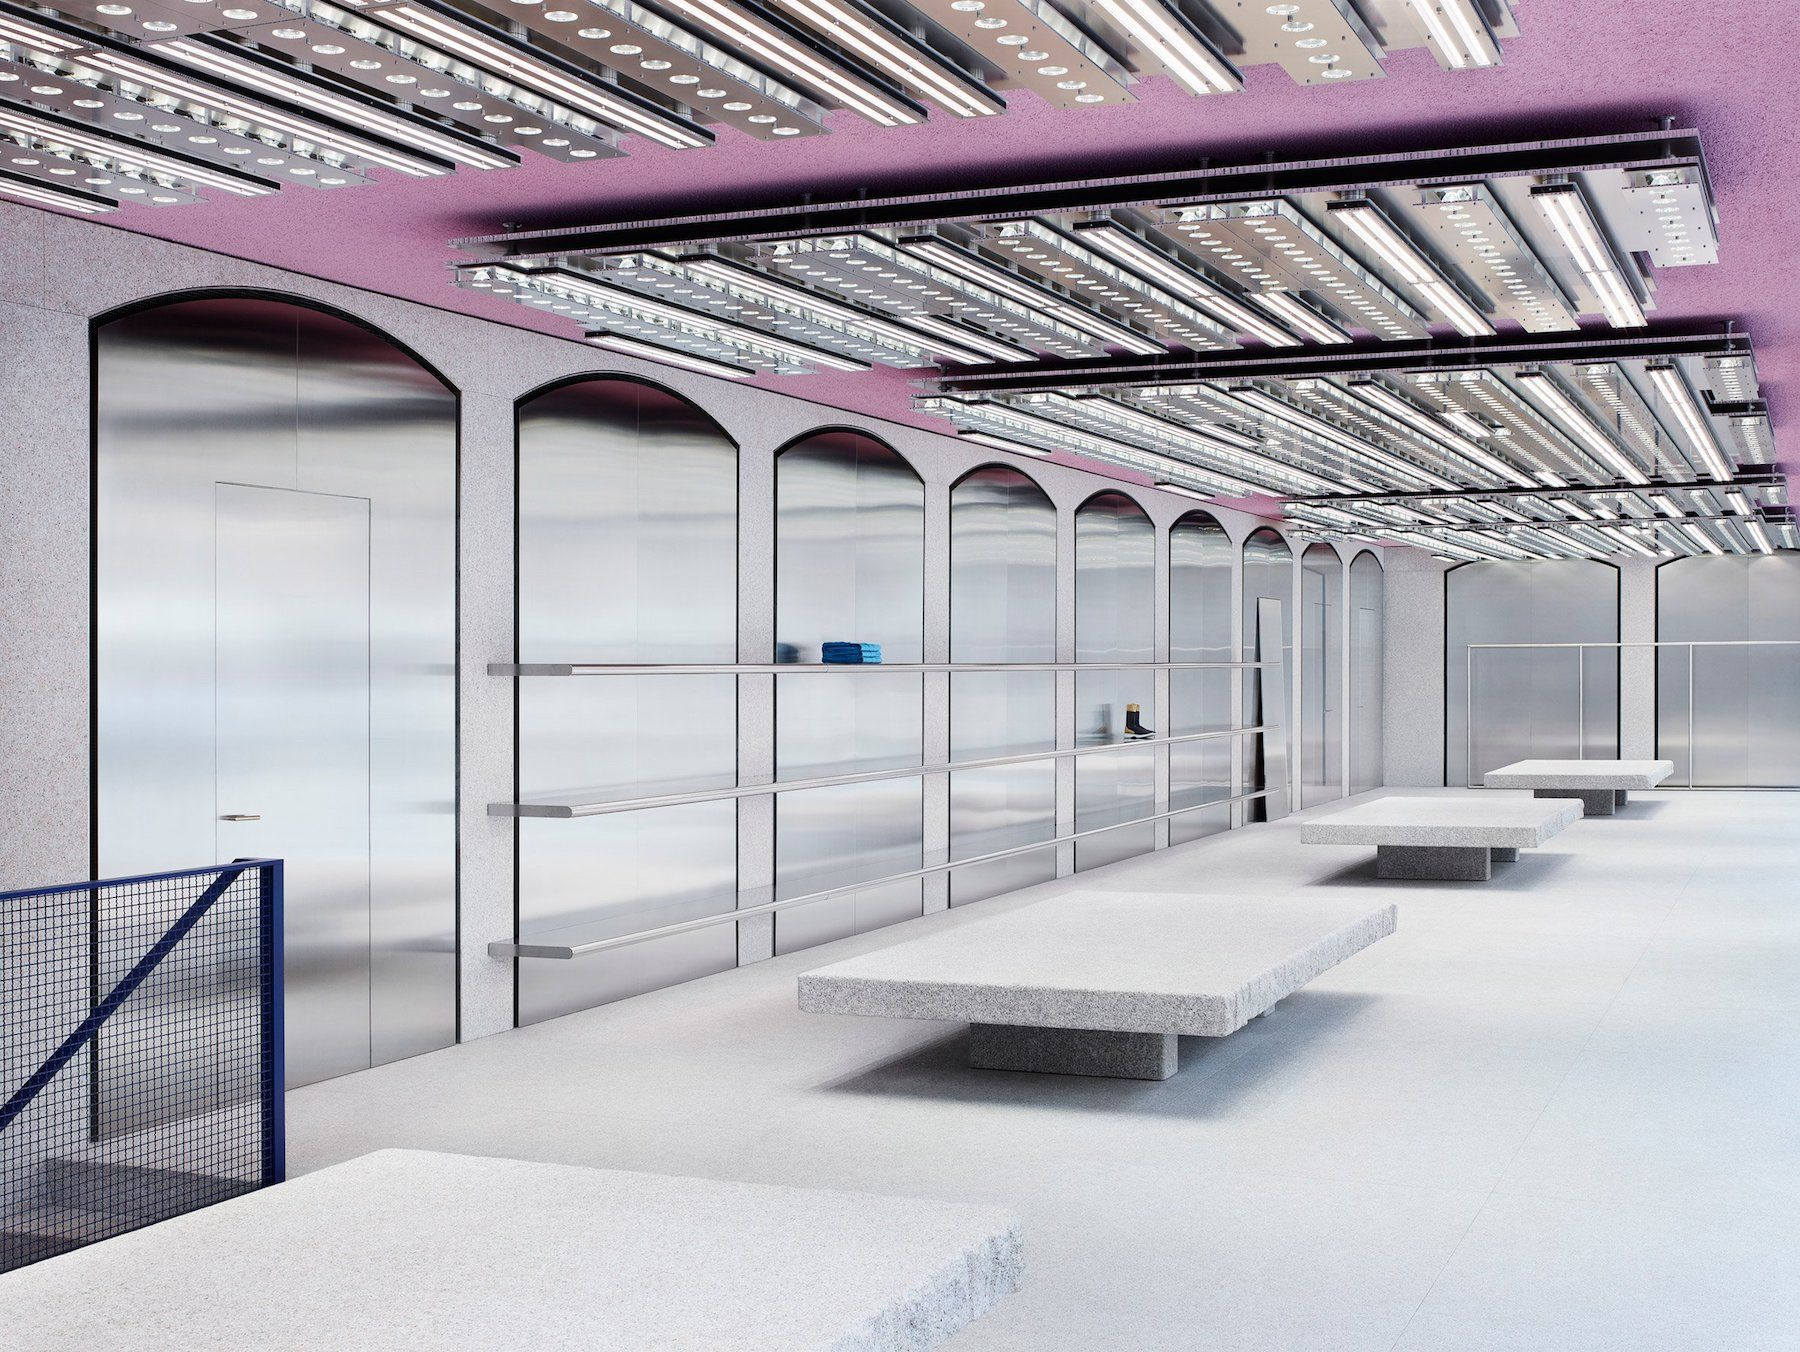 b261ba5d55f0 Acne Studios Milan is a minimalist store interior located in Milan, Italy,  designed by Jonny Johansson. The space is accented by a pink ceiling, ...